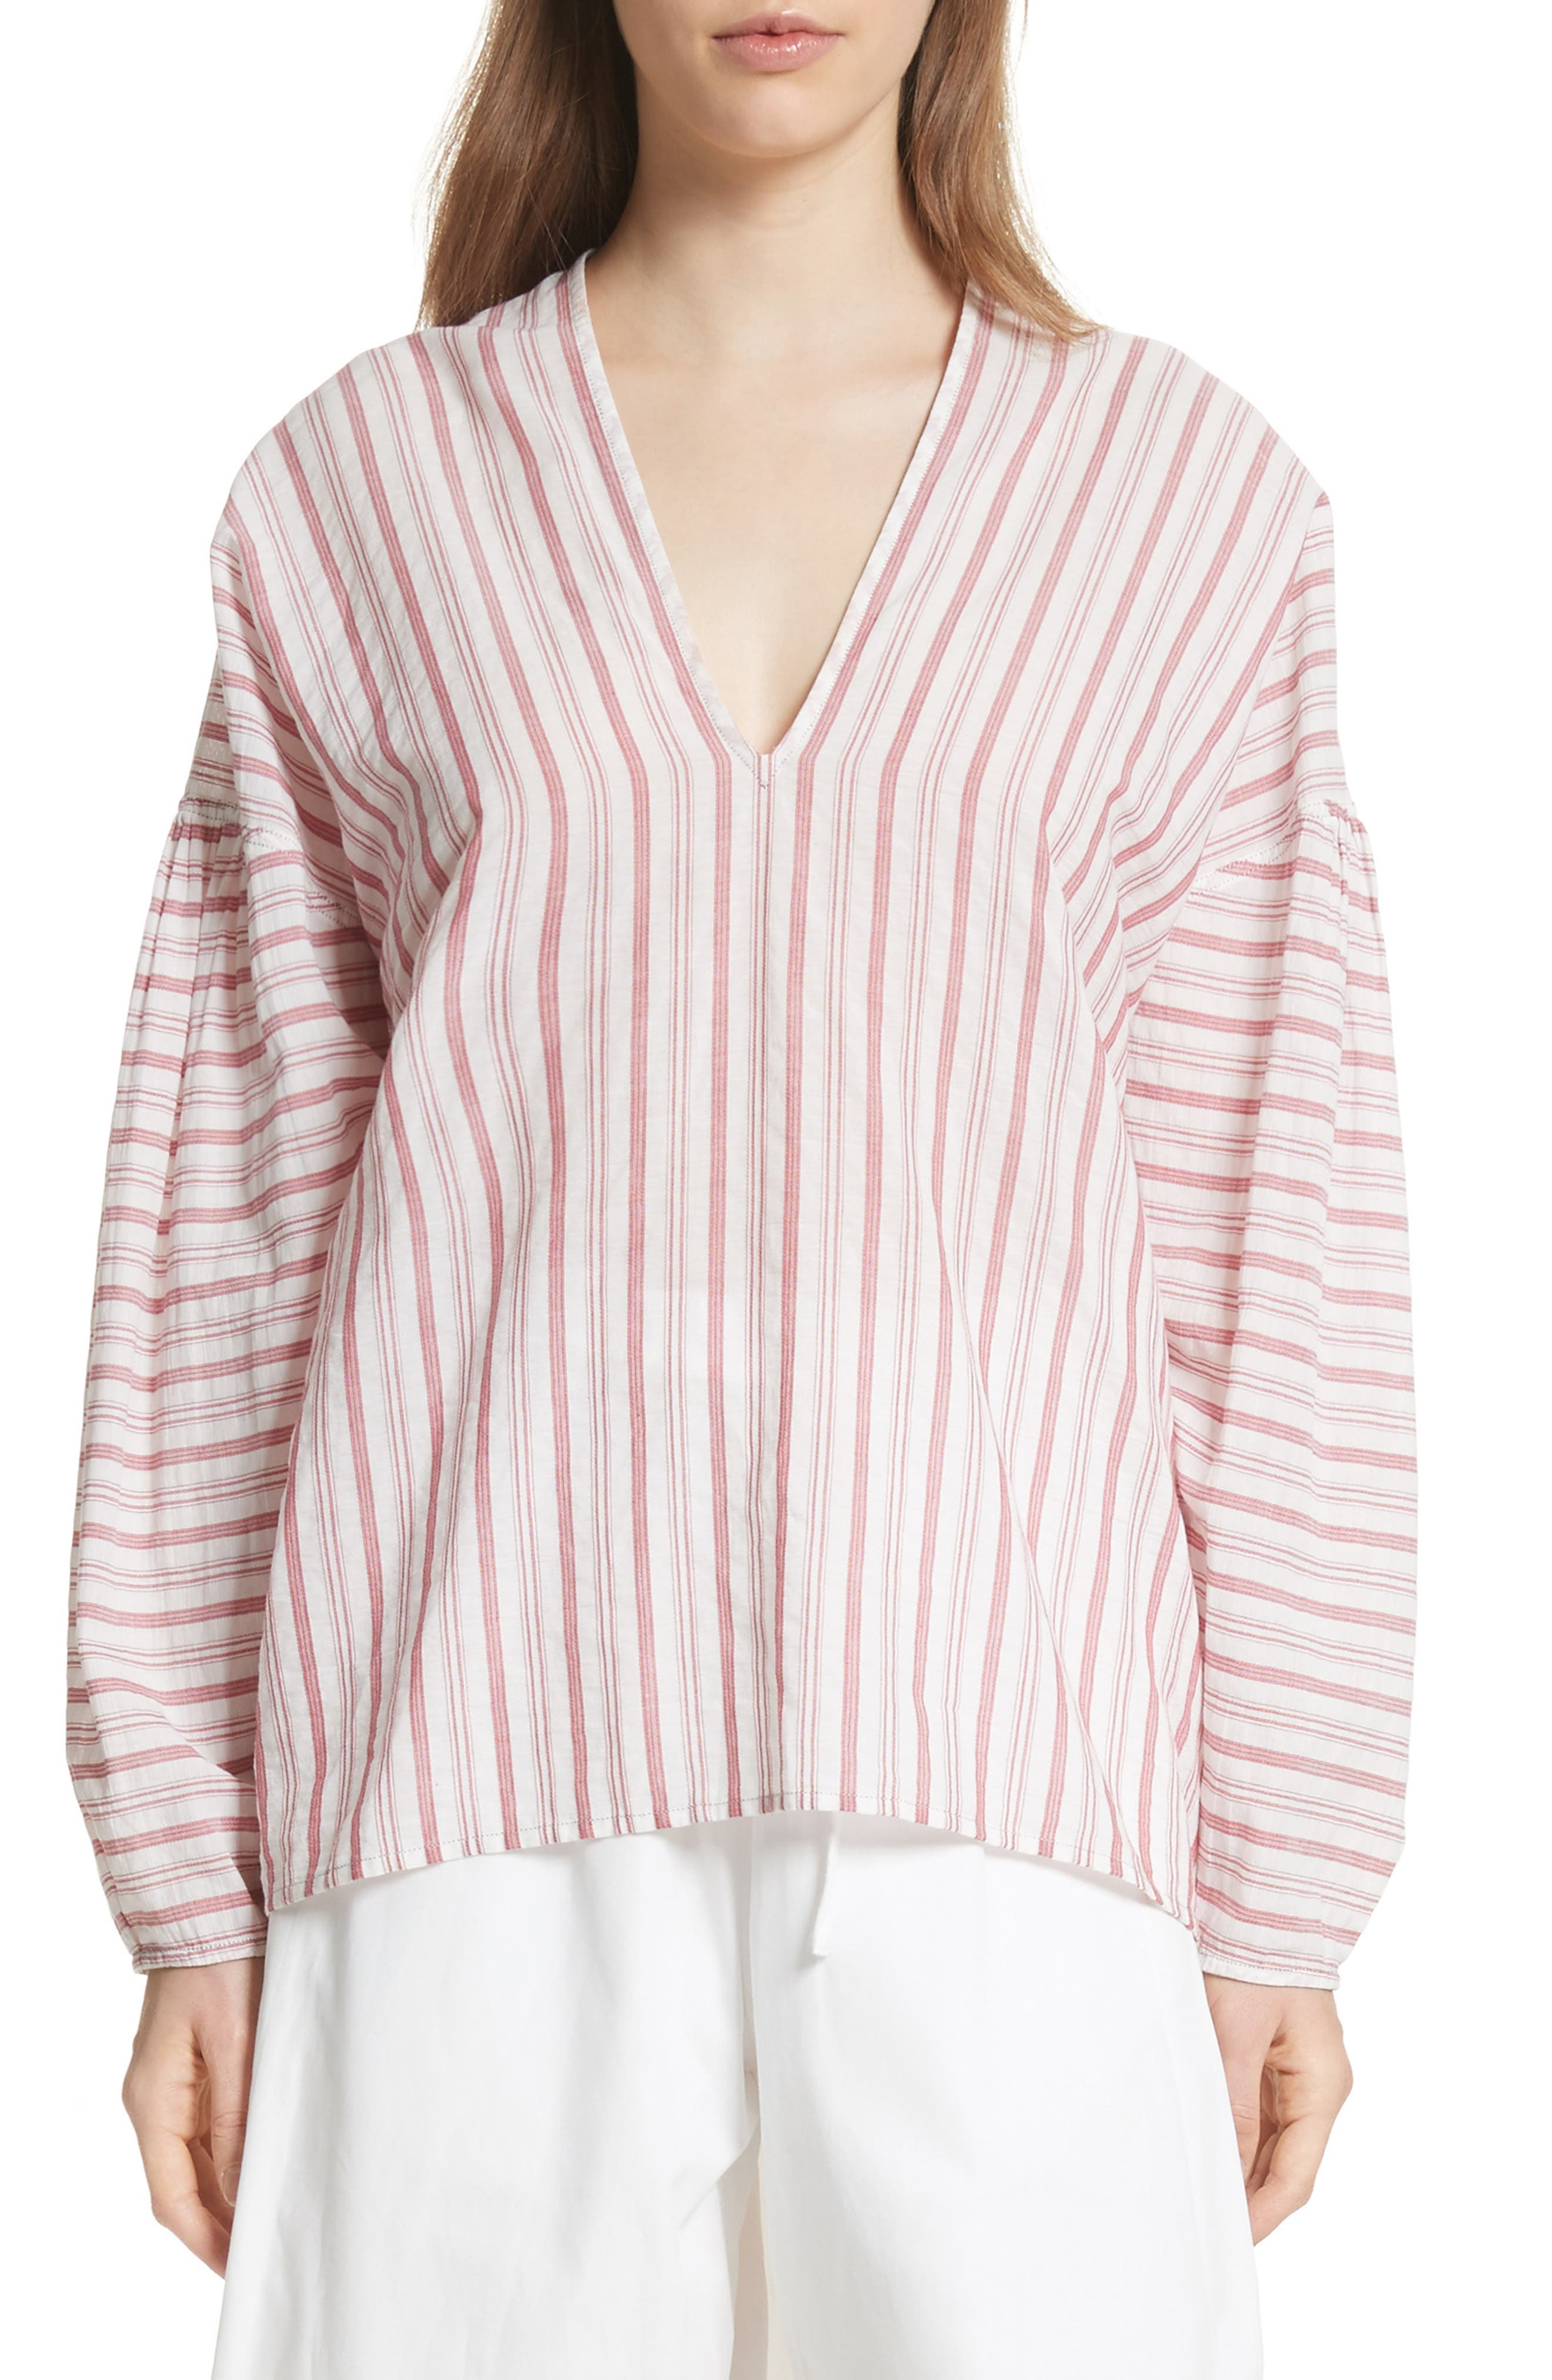 Stripe Cotton Top,                         Main,                         color, Off White/ Poppy